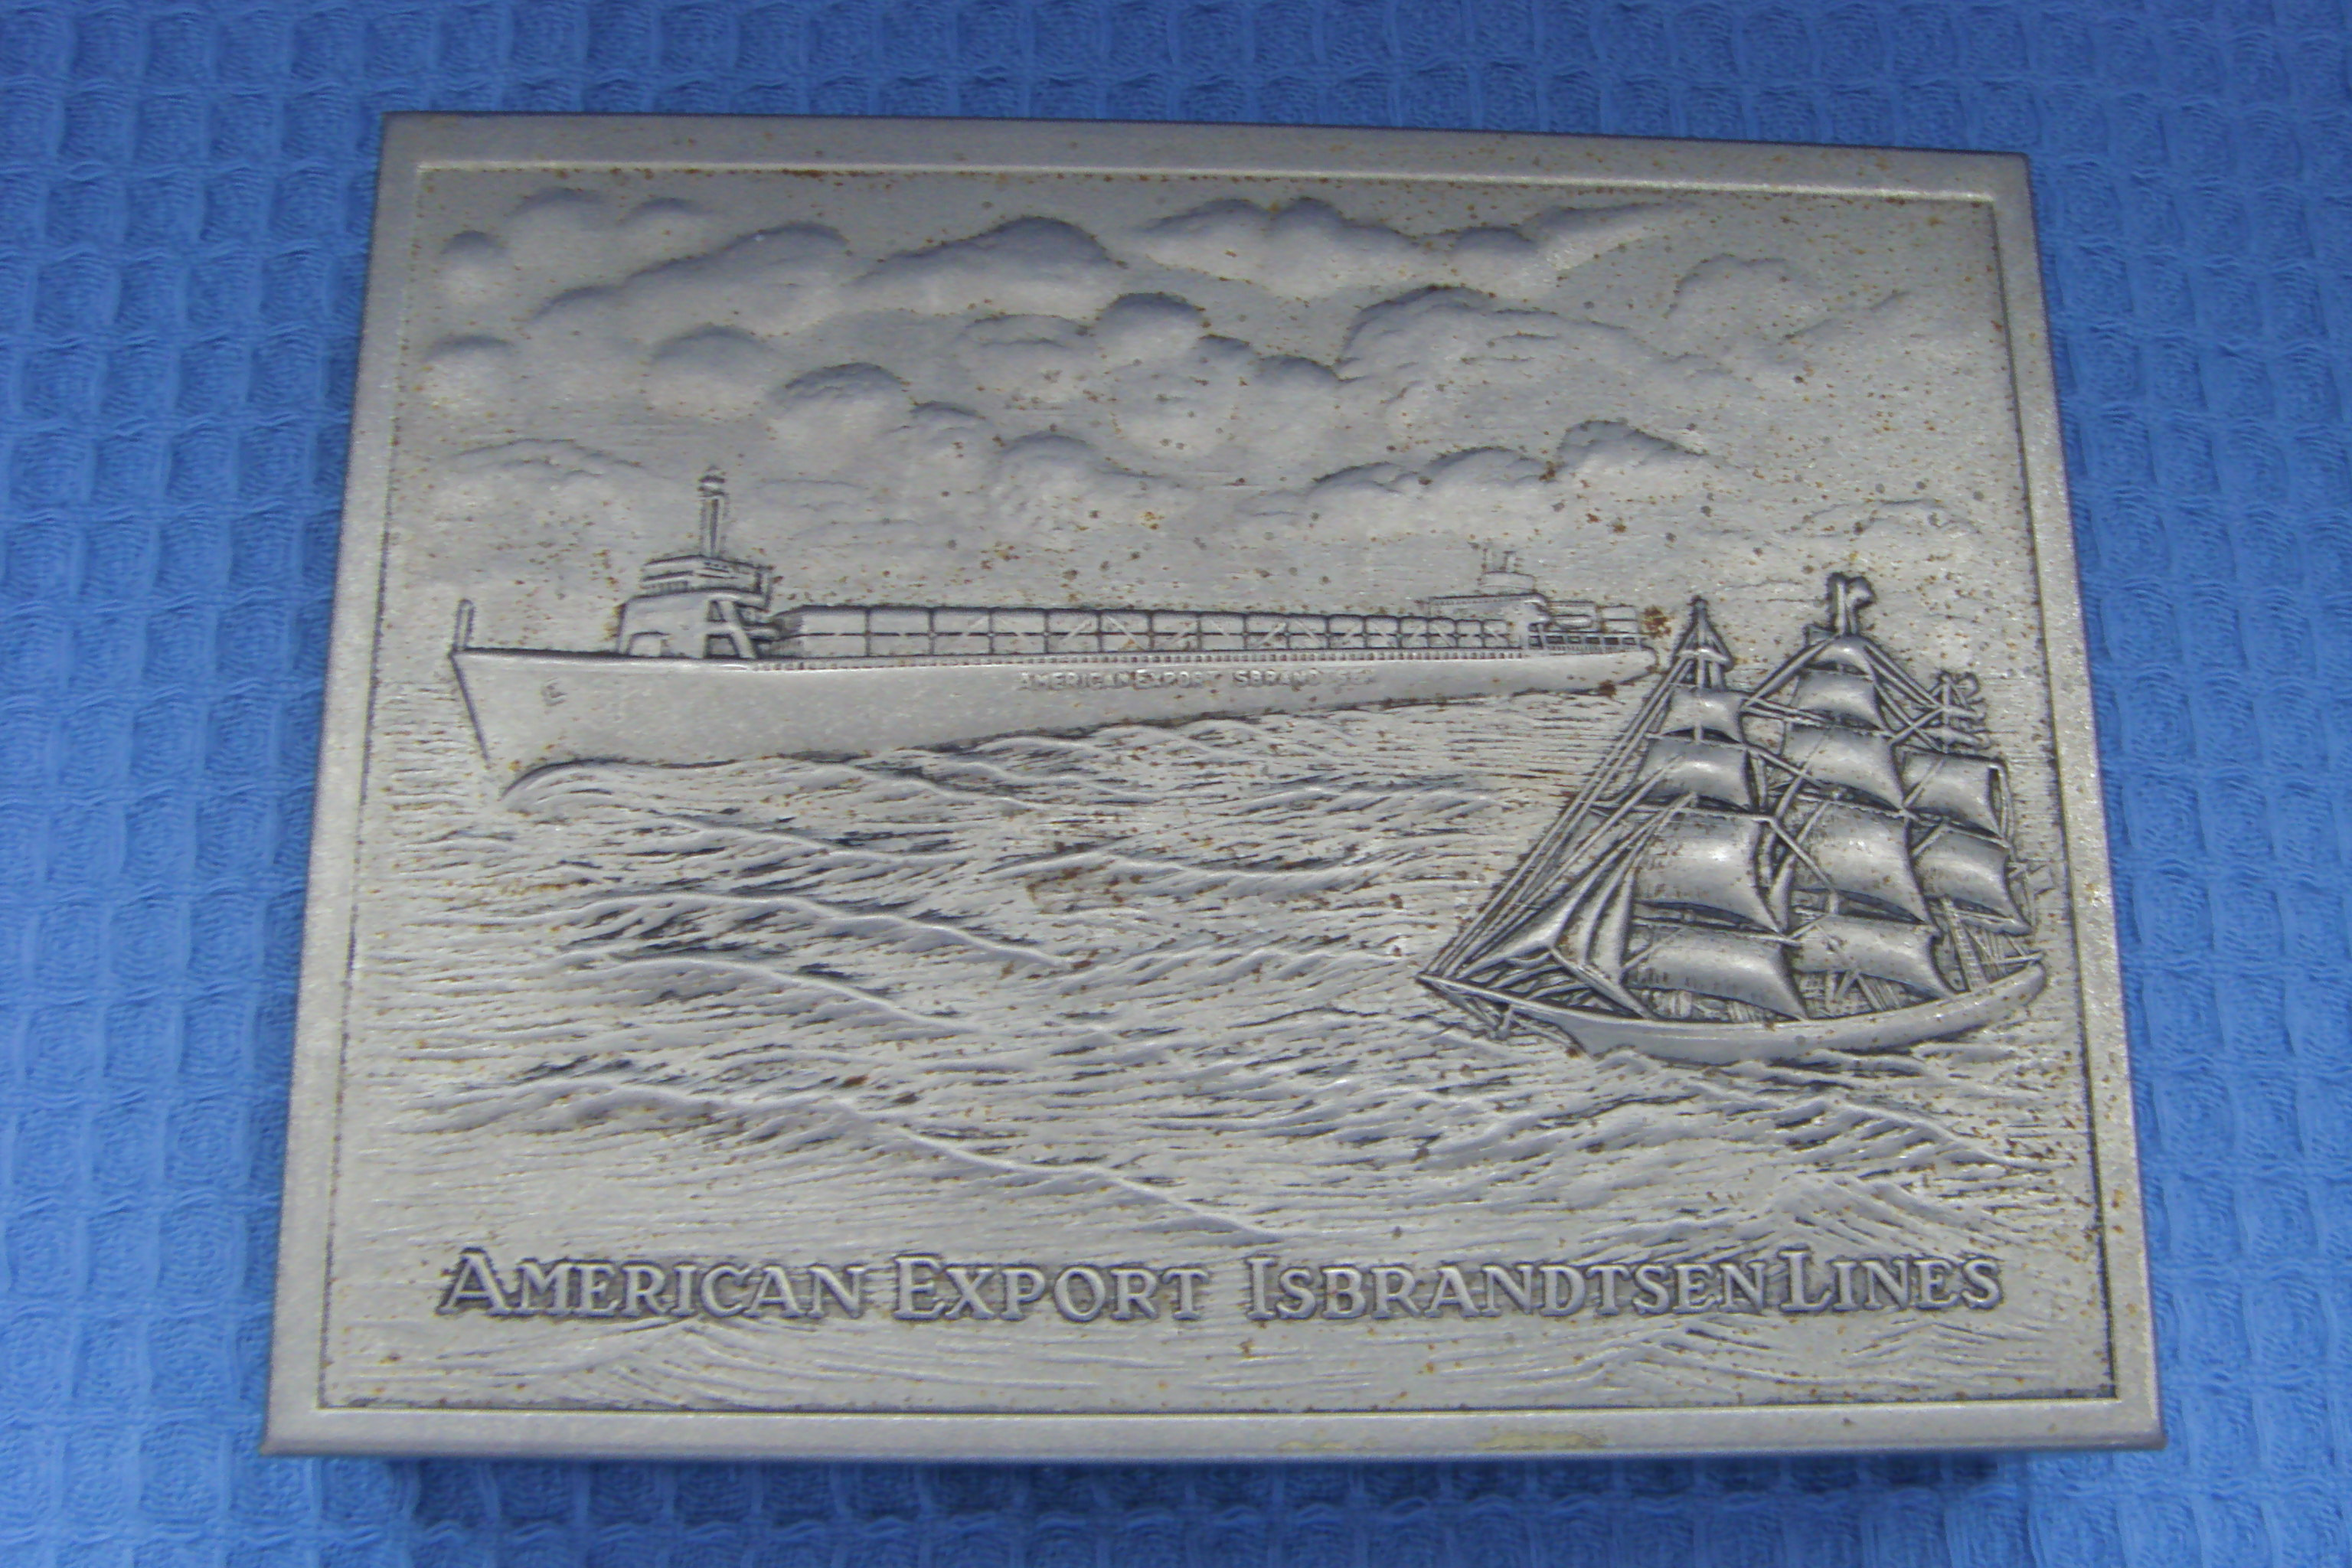 SOUVENIR CIGARETTE CASE FROM THE AMERICAN EXPORT ISBRANDTSEN LINES SHIPPING COMPANY